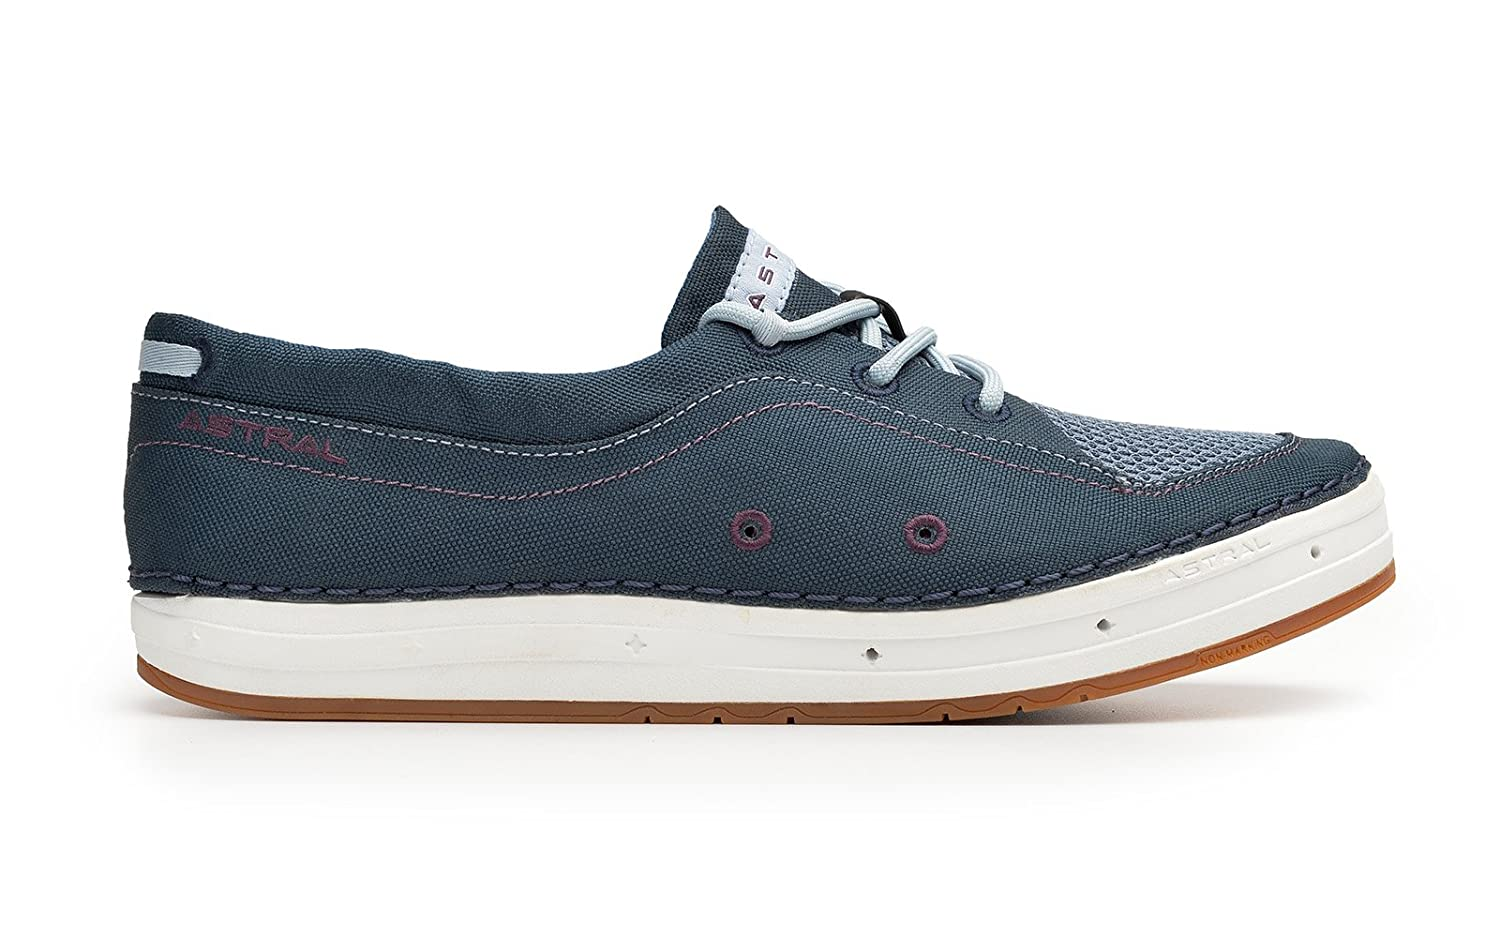 Astral Porter Women's Water Boat US|Navy/White Shoe B01BM1HZ3U 7.5 M US|Navy/White Boat e7826e